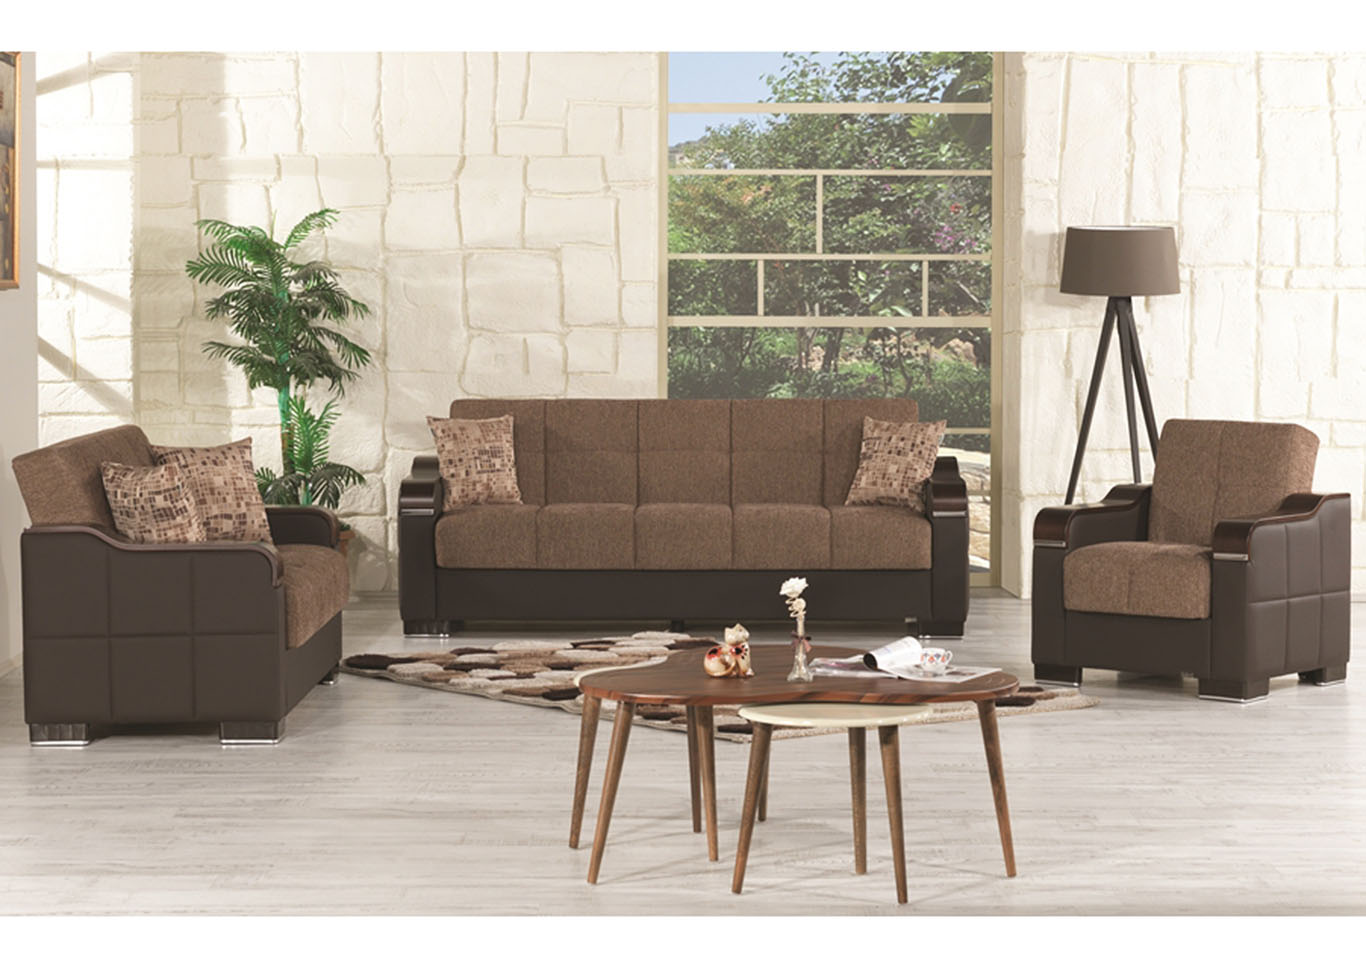 Uptown Brown Chenille Love Seat,CasaMode Functional Furniture